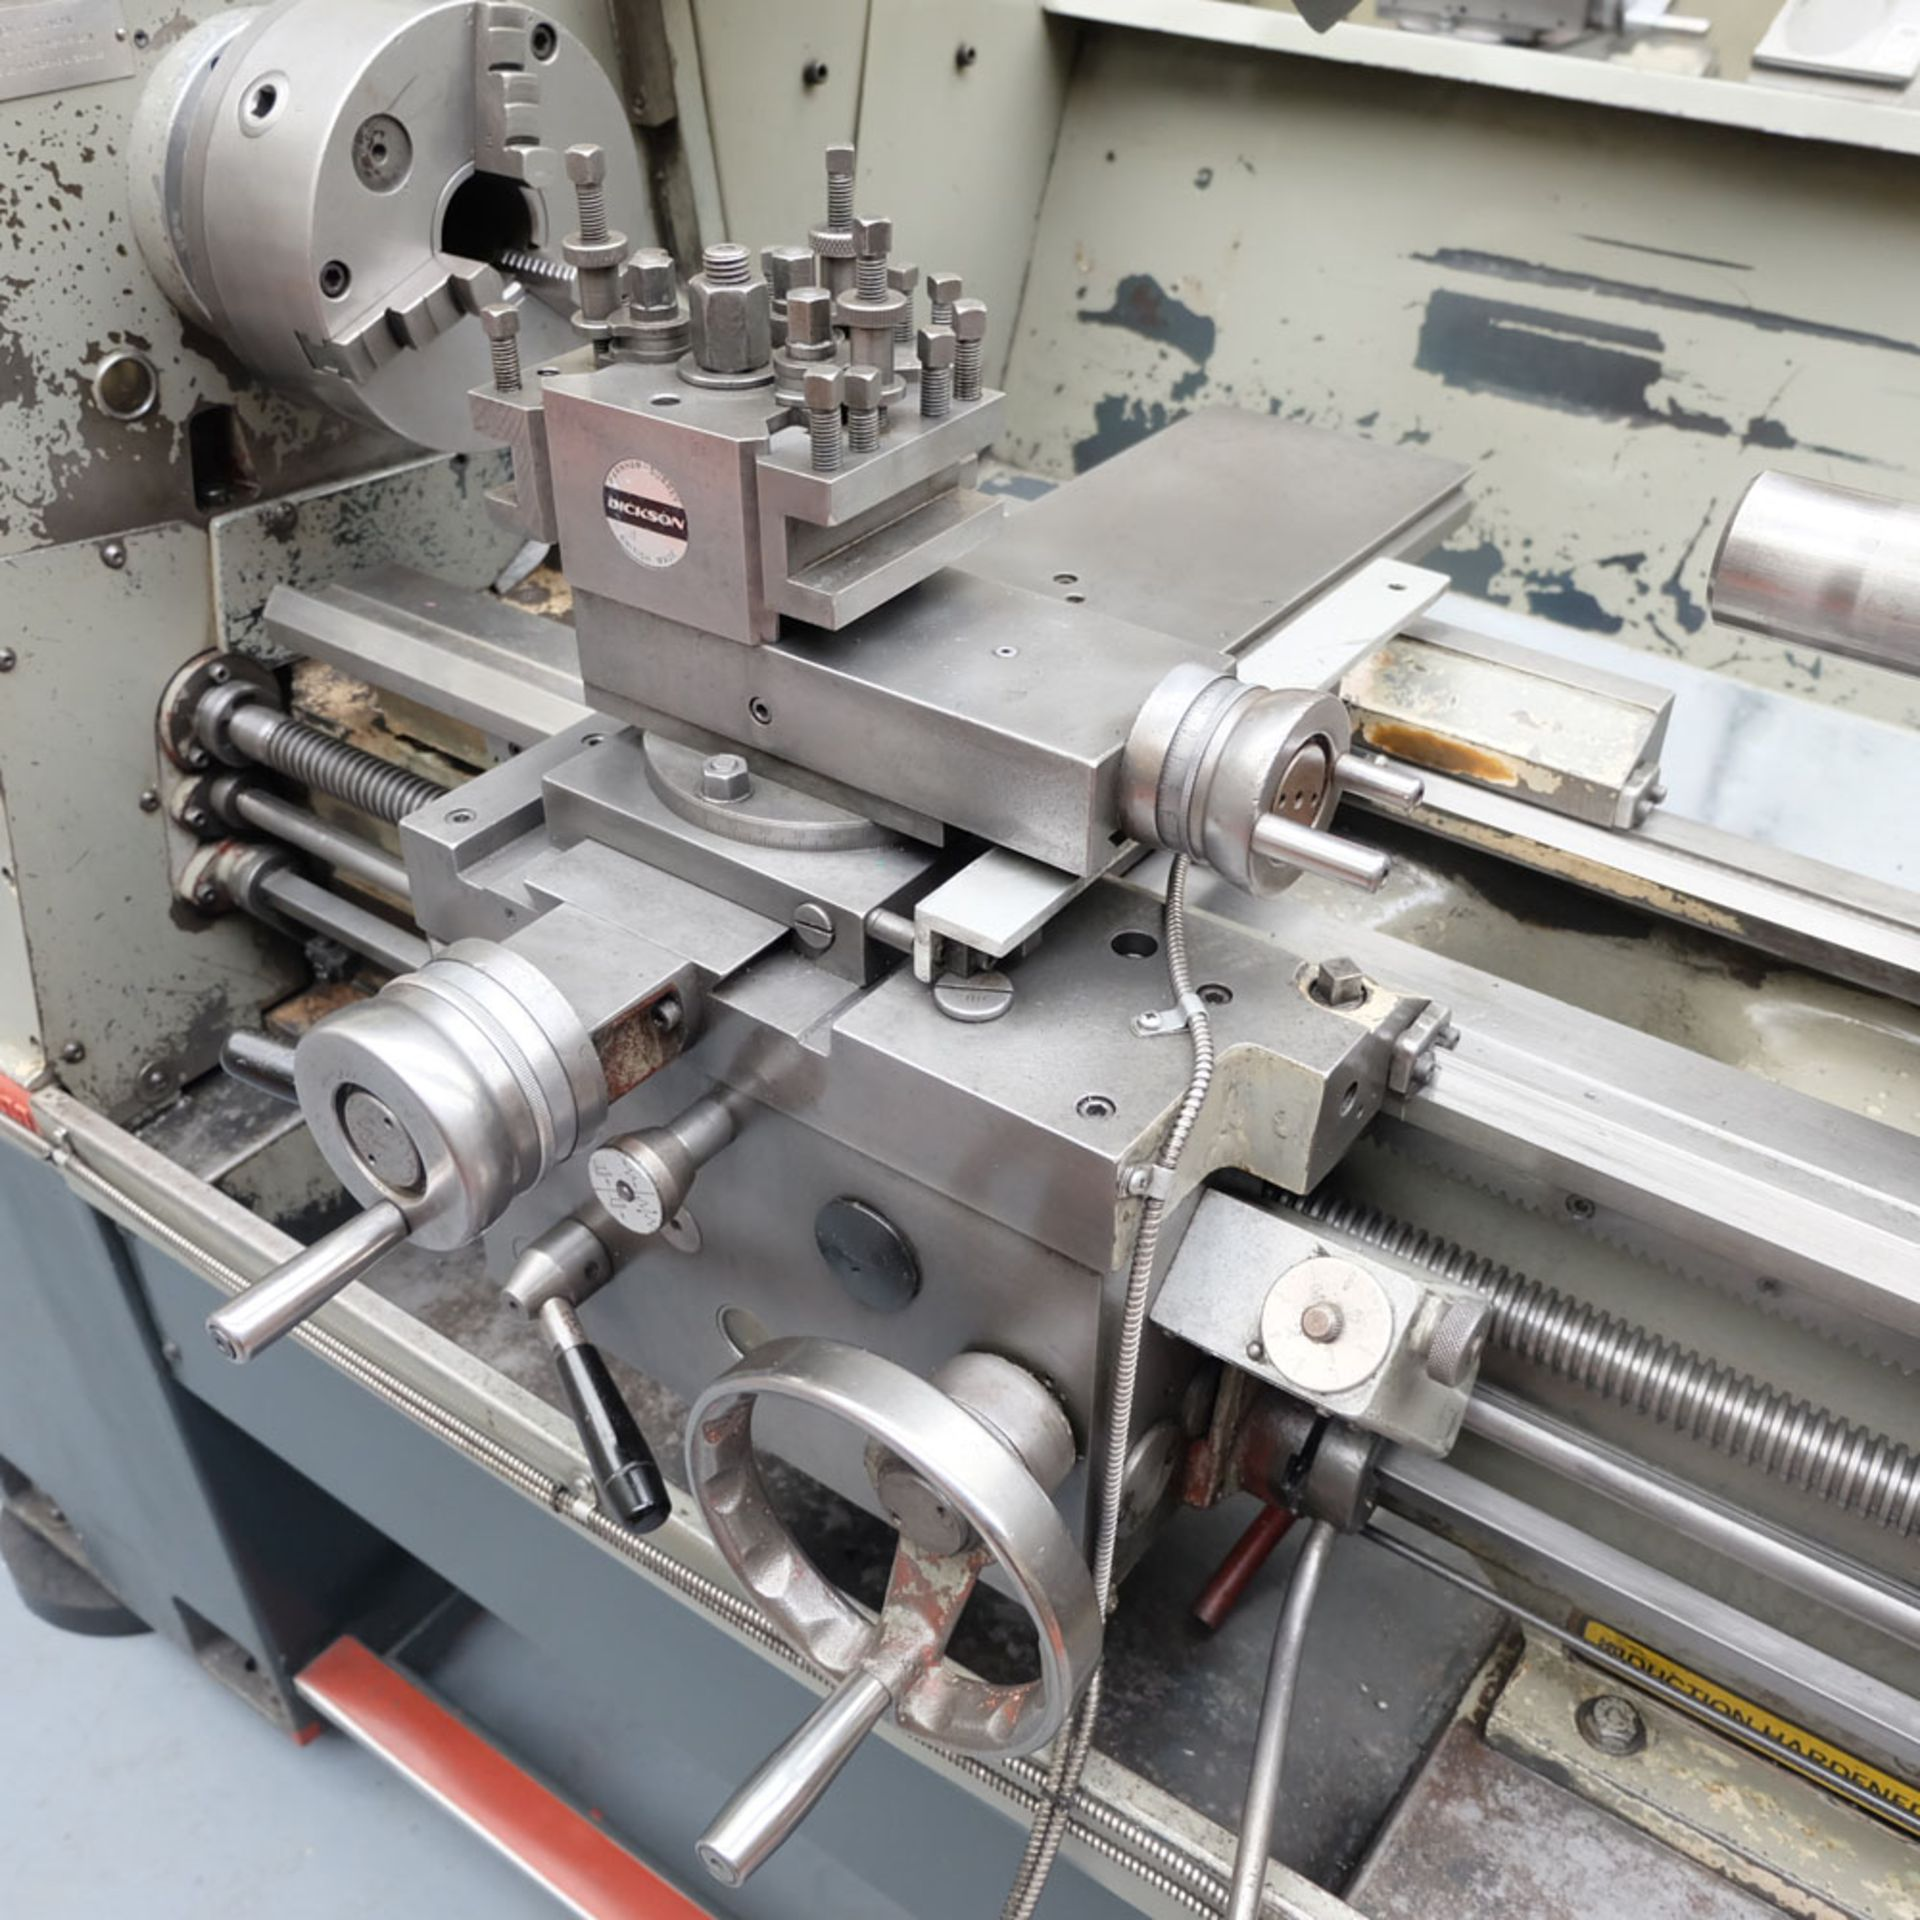 Colchester Student 1800 Gap Bed Centre Lathe. - Image 5 of 8